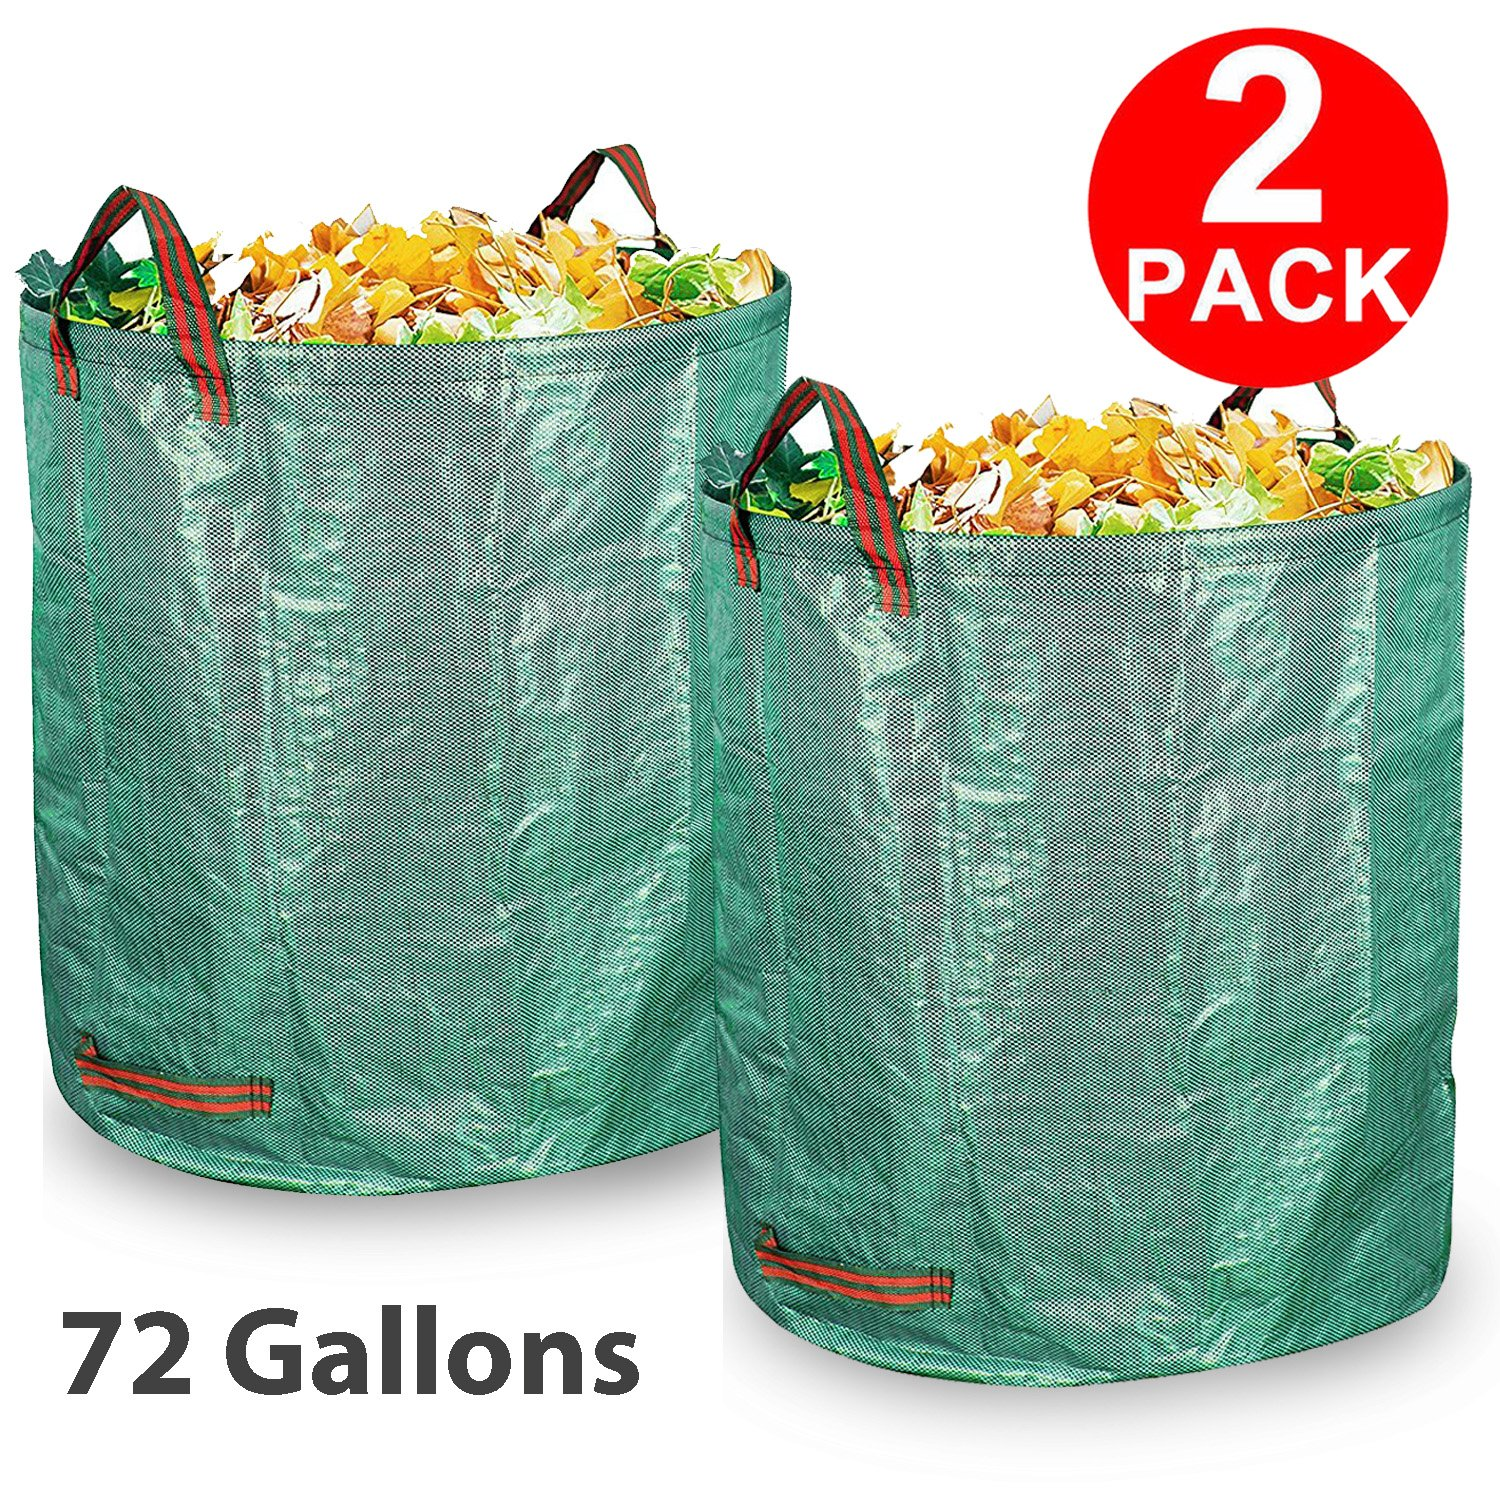 Garden Waste Bag, 2 Pack 72 Gallons Reusable and Collapsibles Extra Large Gardening Lawn Grass Yard Leaf Bags Heavy Duty Durable Leaf Container Garbage Trash Bucket Garden Supply